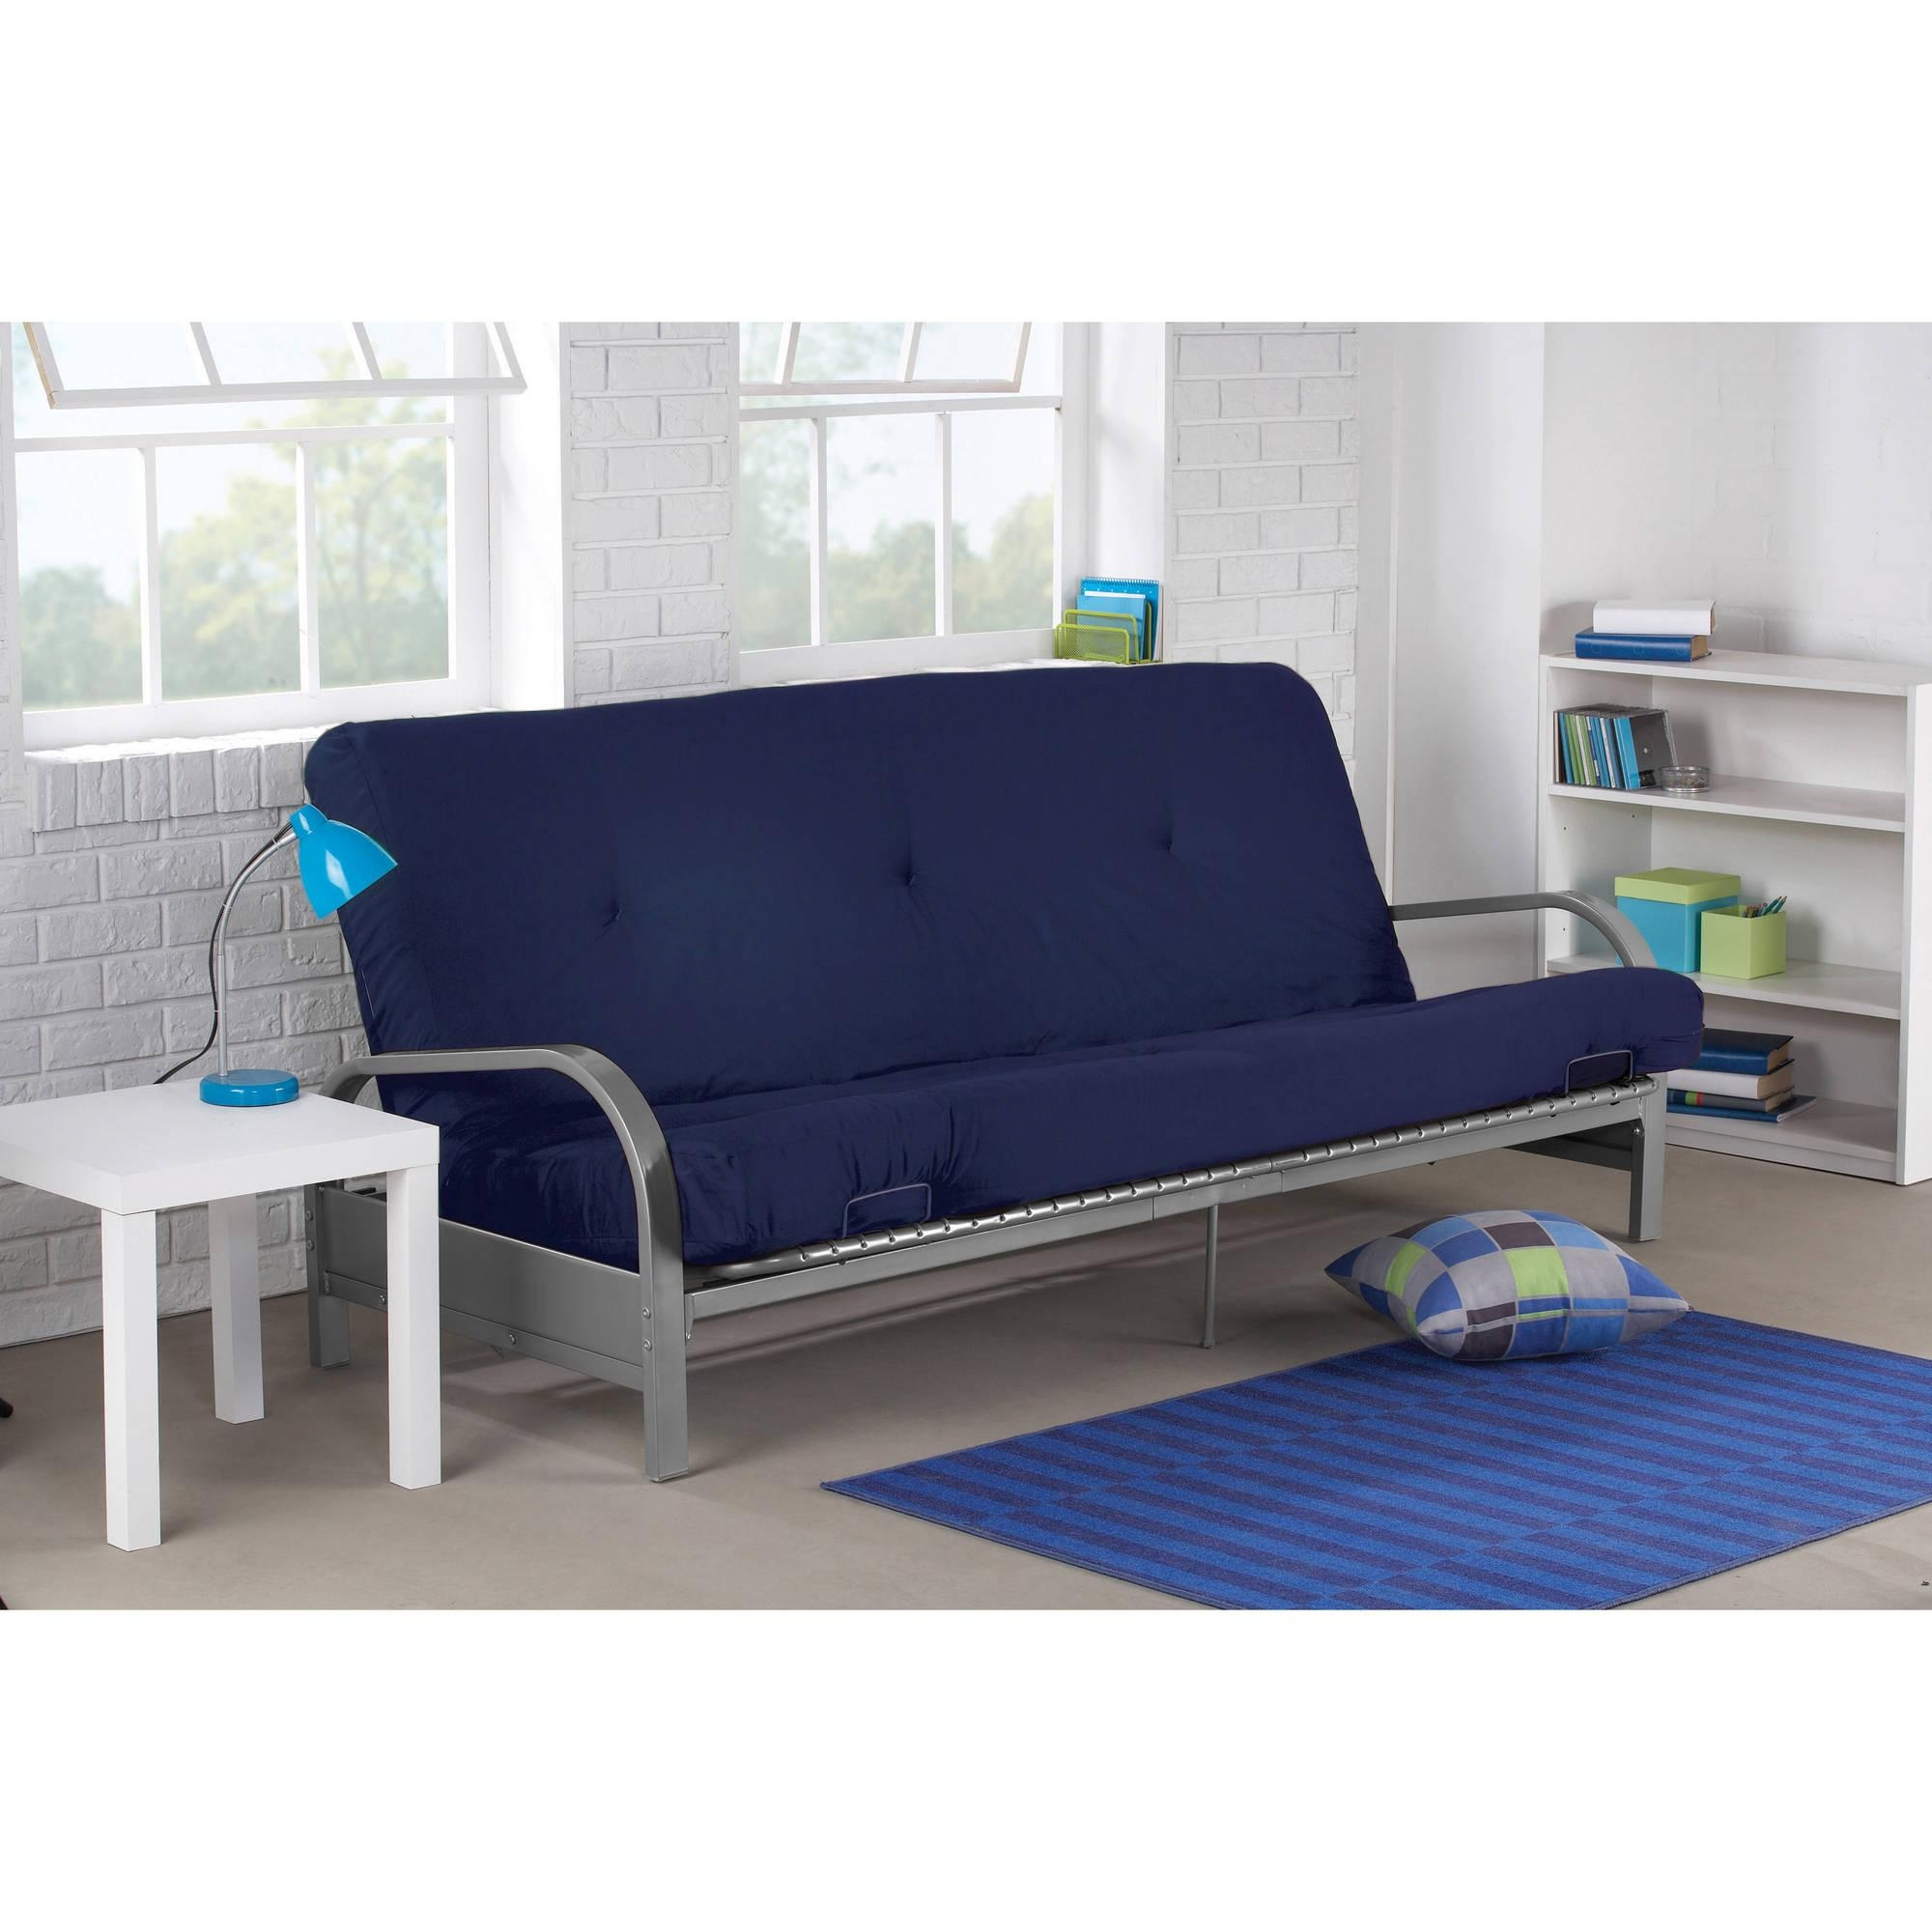 Furniture: Impressive Futon Covers Walmart For Your Lovely Couch For Mainstay Sofas (Image 2 of 20)